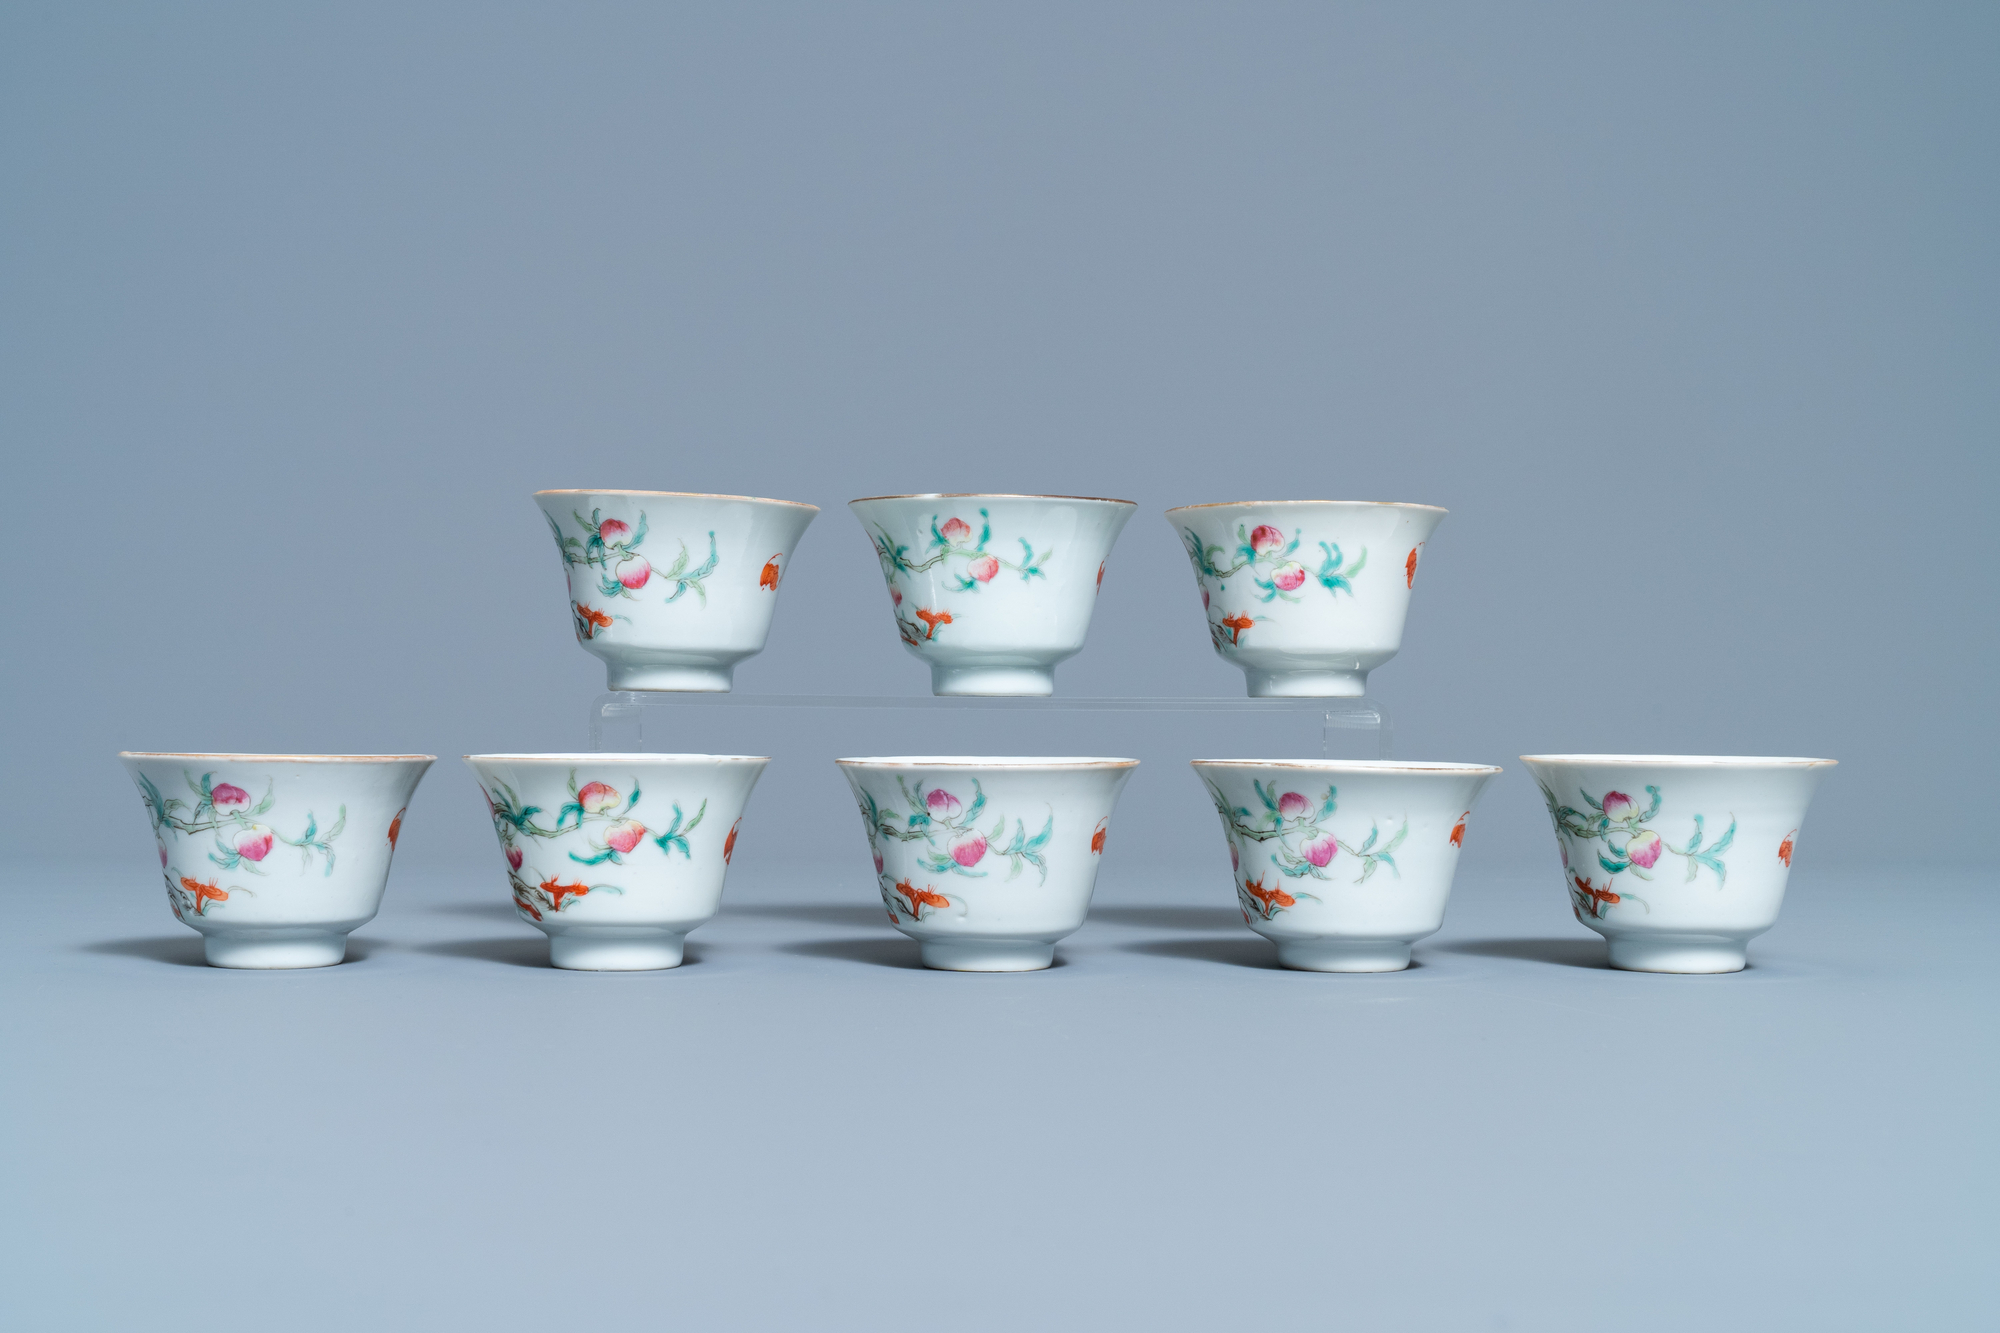 Eight Chinese famille rose 'nine peach' bowls, Hui Tong Zhen Pin mark, 19/20th C. - Image 3 of 7